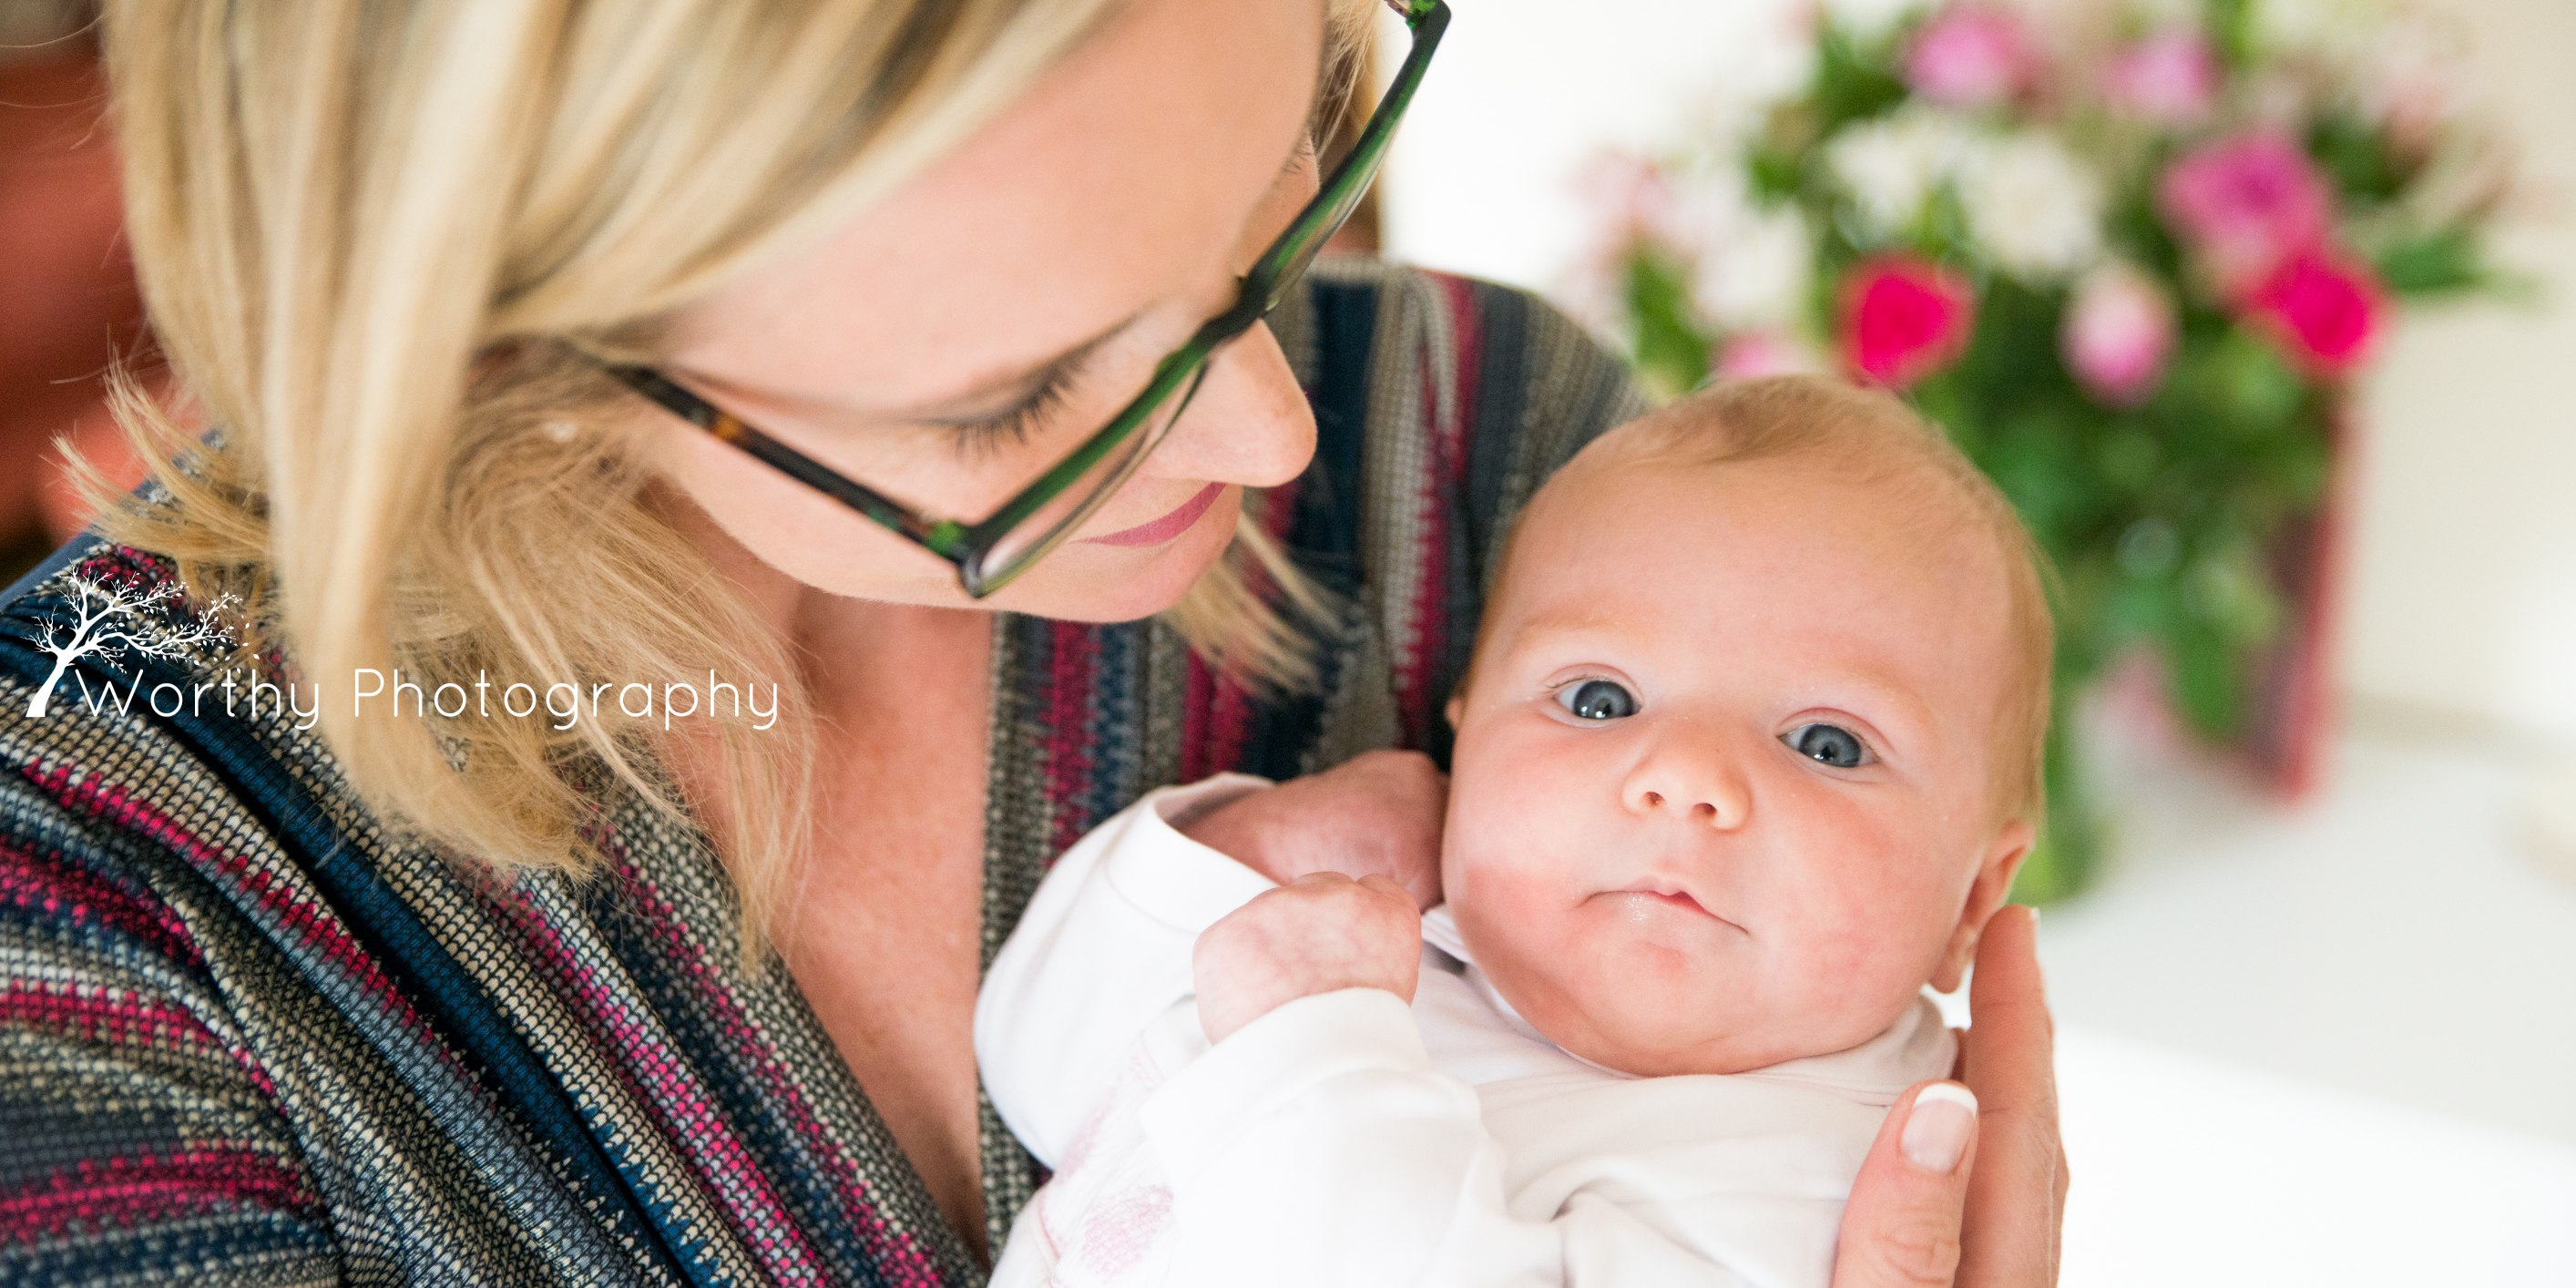 Newborn Photography - Worthy PHotography